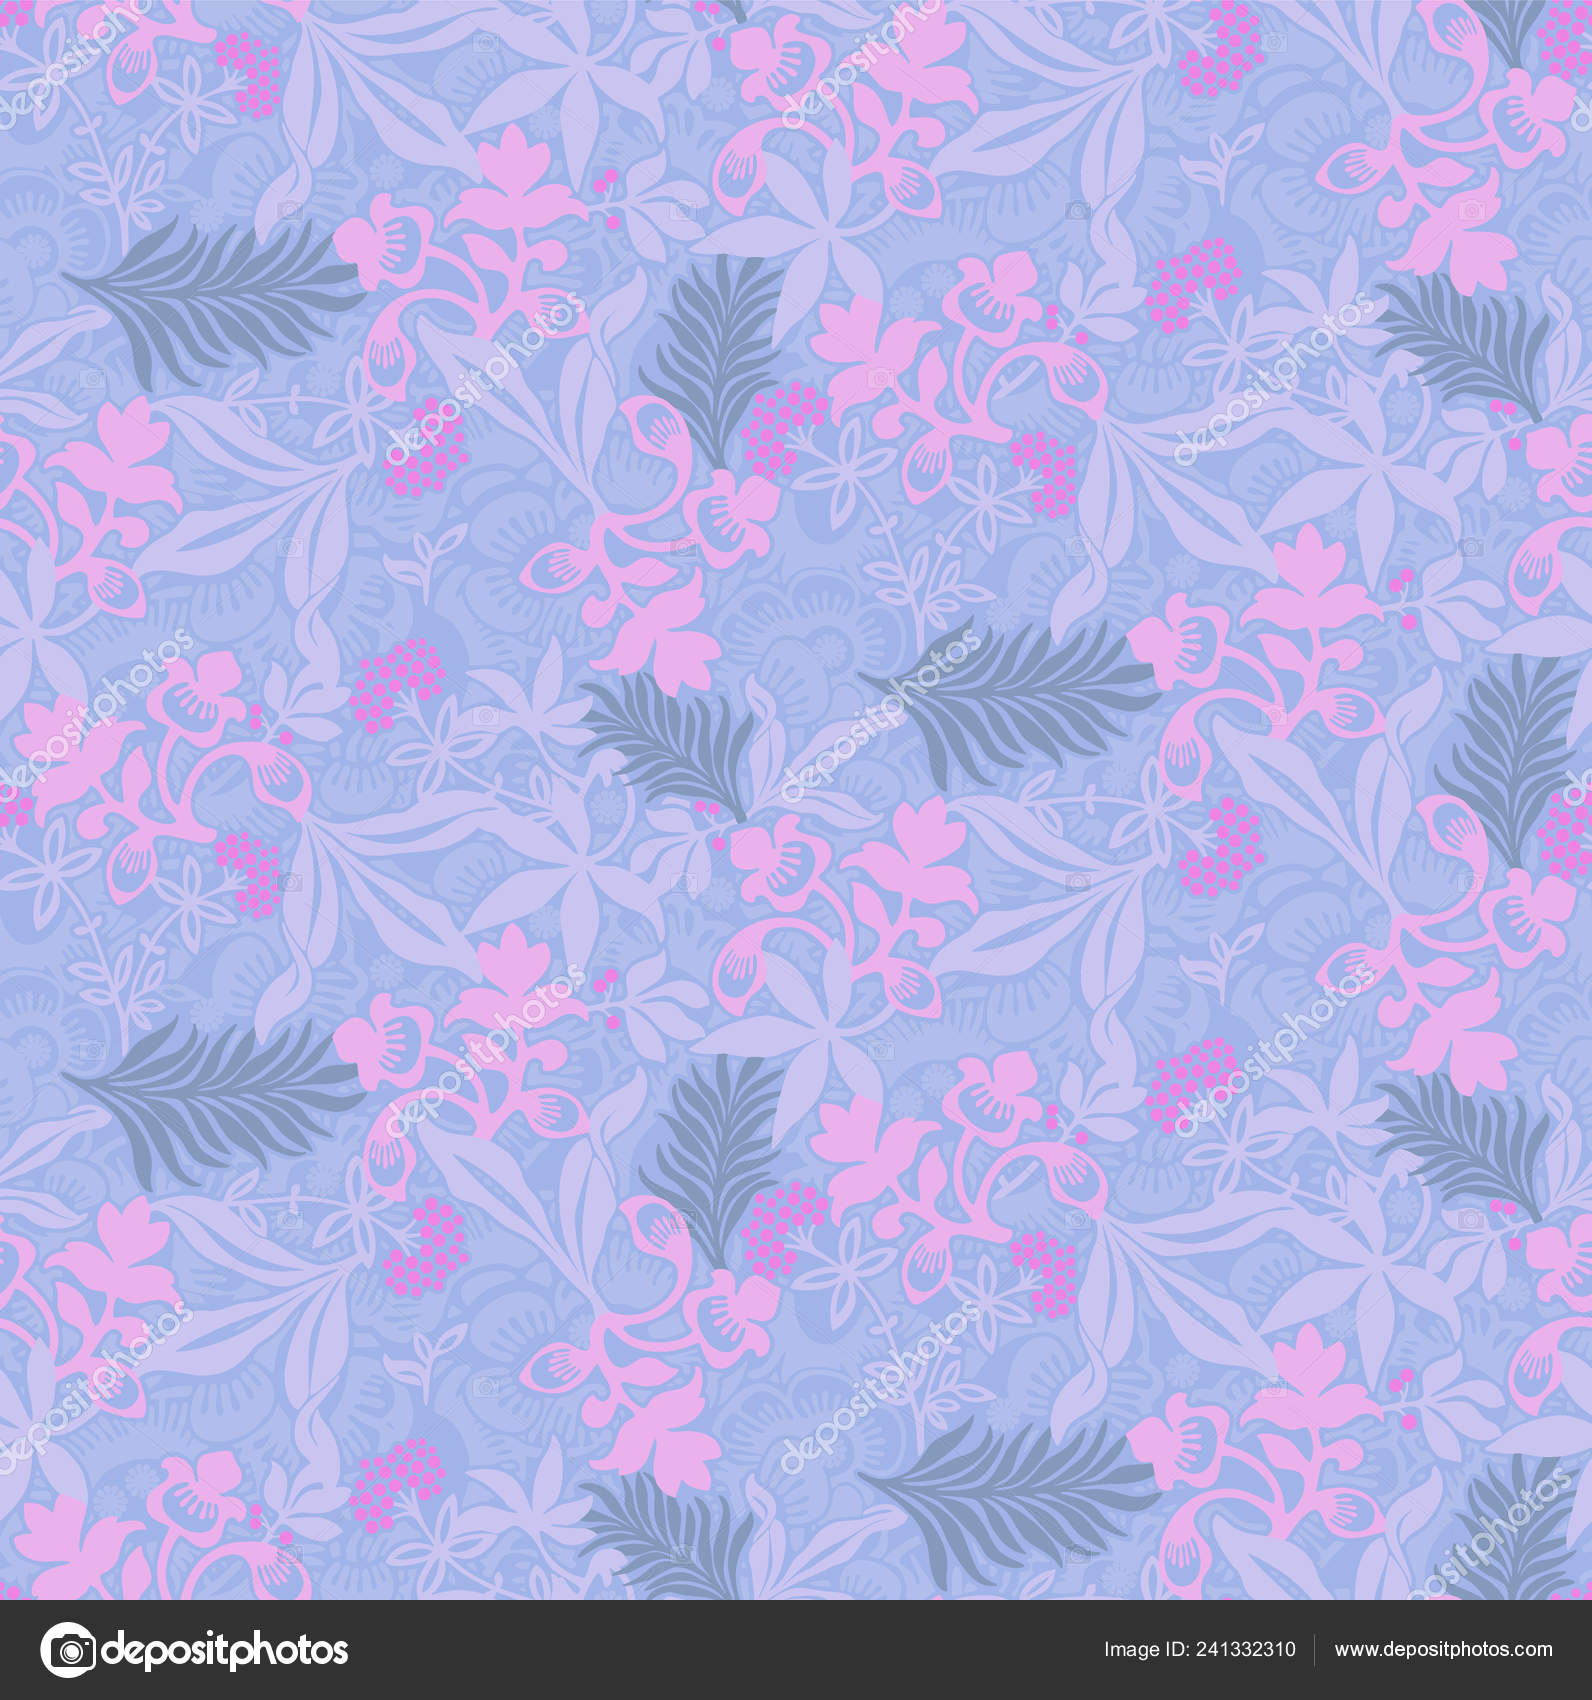 Pastel Floral Seamless Wallpaper Tropical Leaves Pink Neon